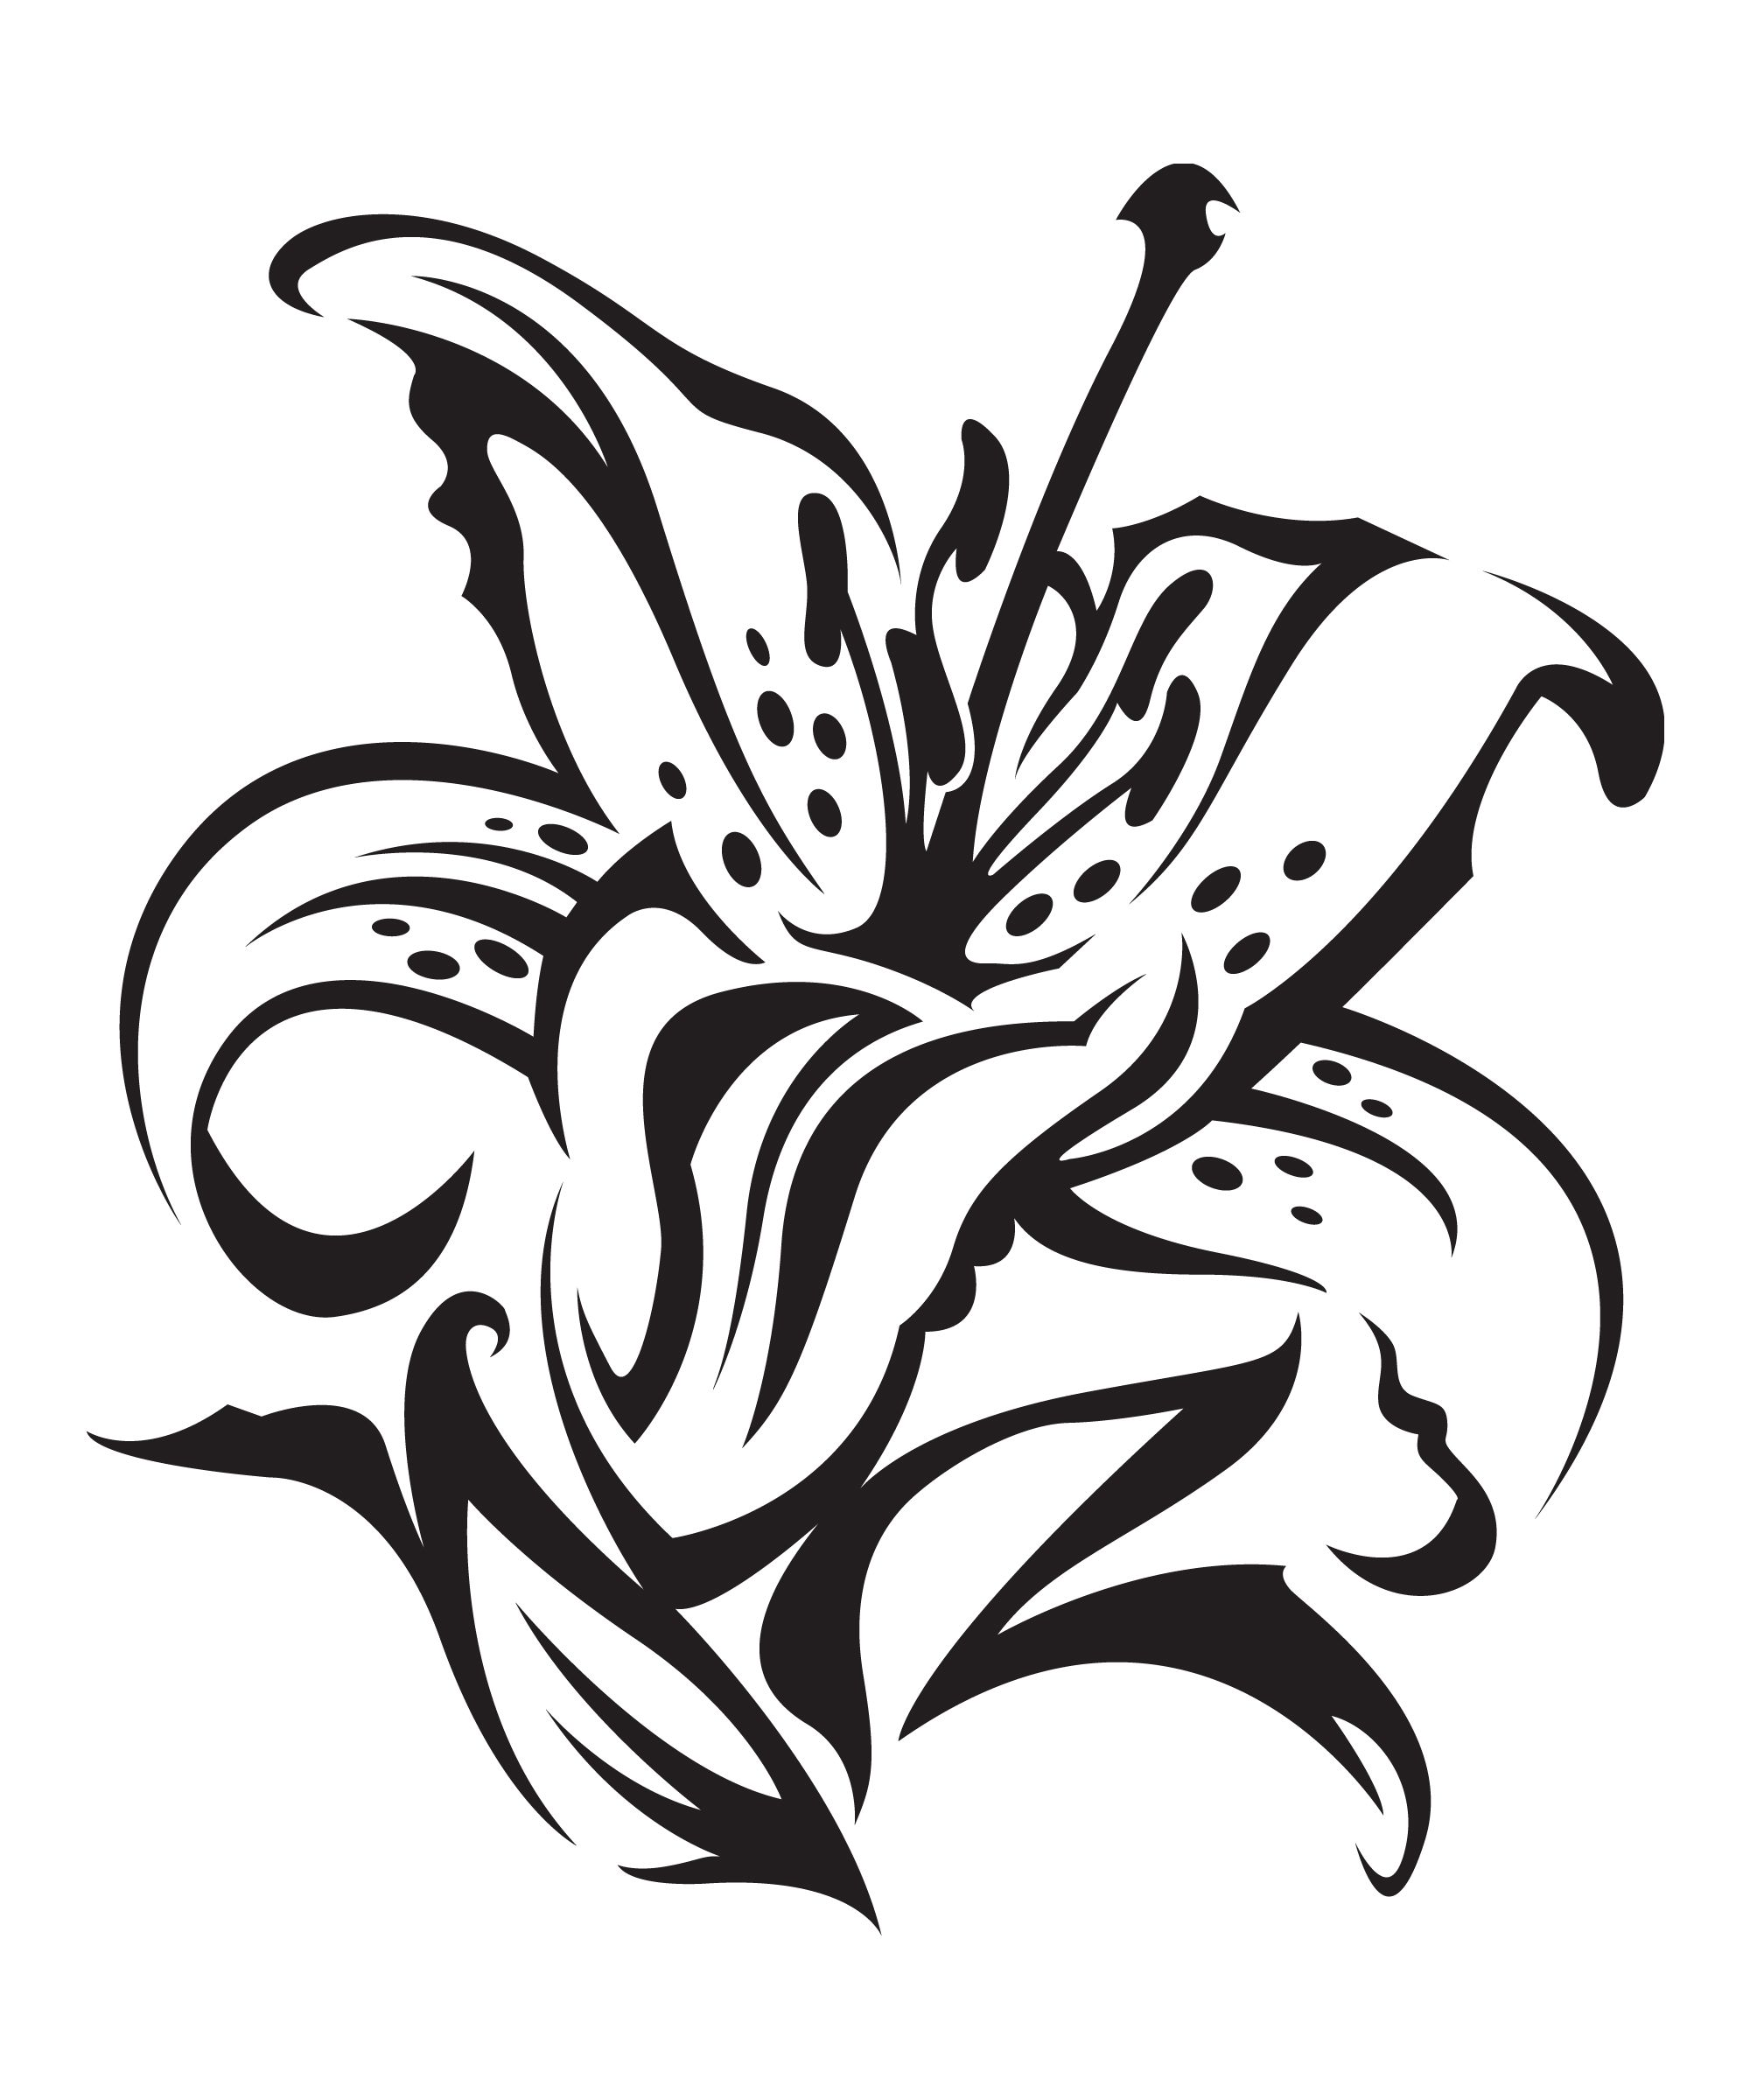 Lily tattoos meaning symbolism awesome artwork pinterest lily tattoos meaning symbolism izmirmasajfo